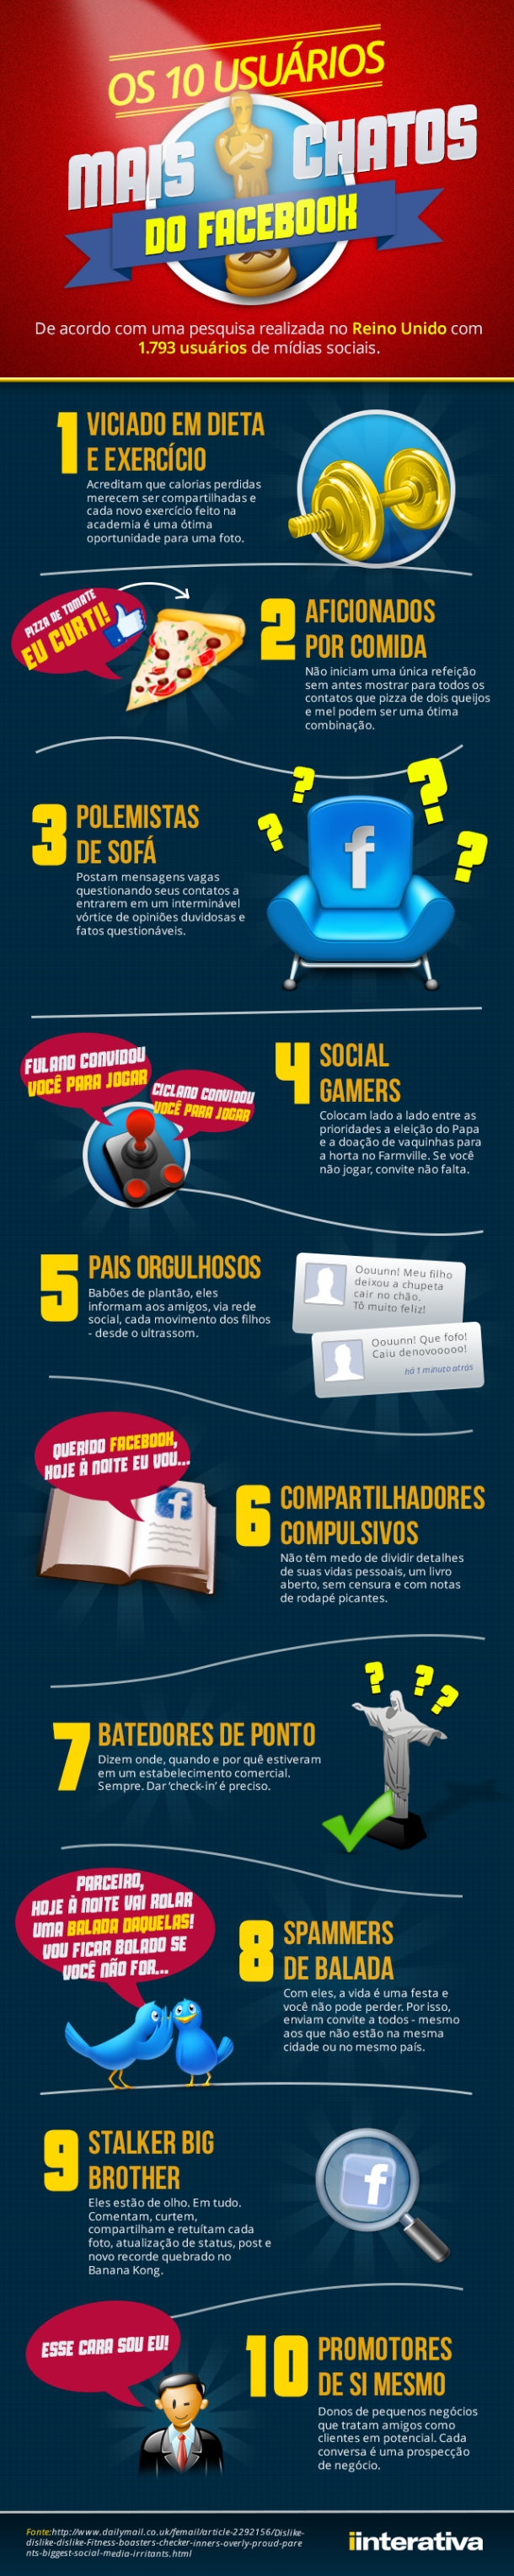 infografico-10-usuarios-mais-chatos-do-Facebook